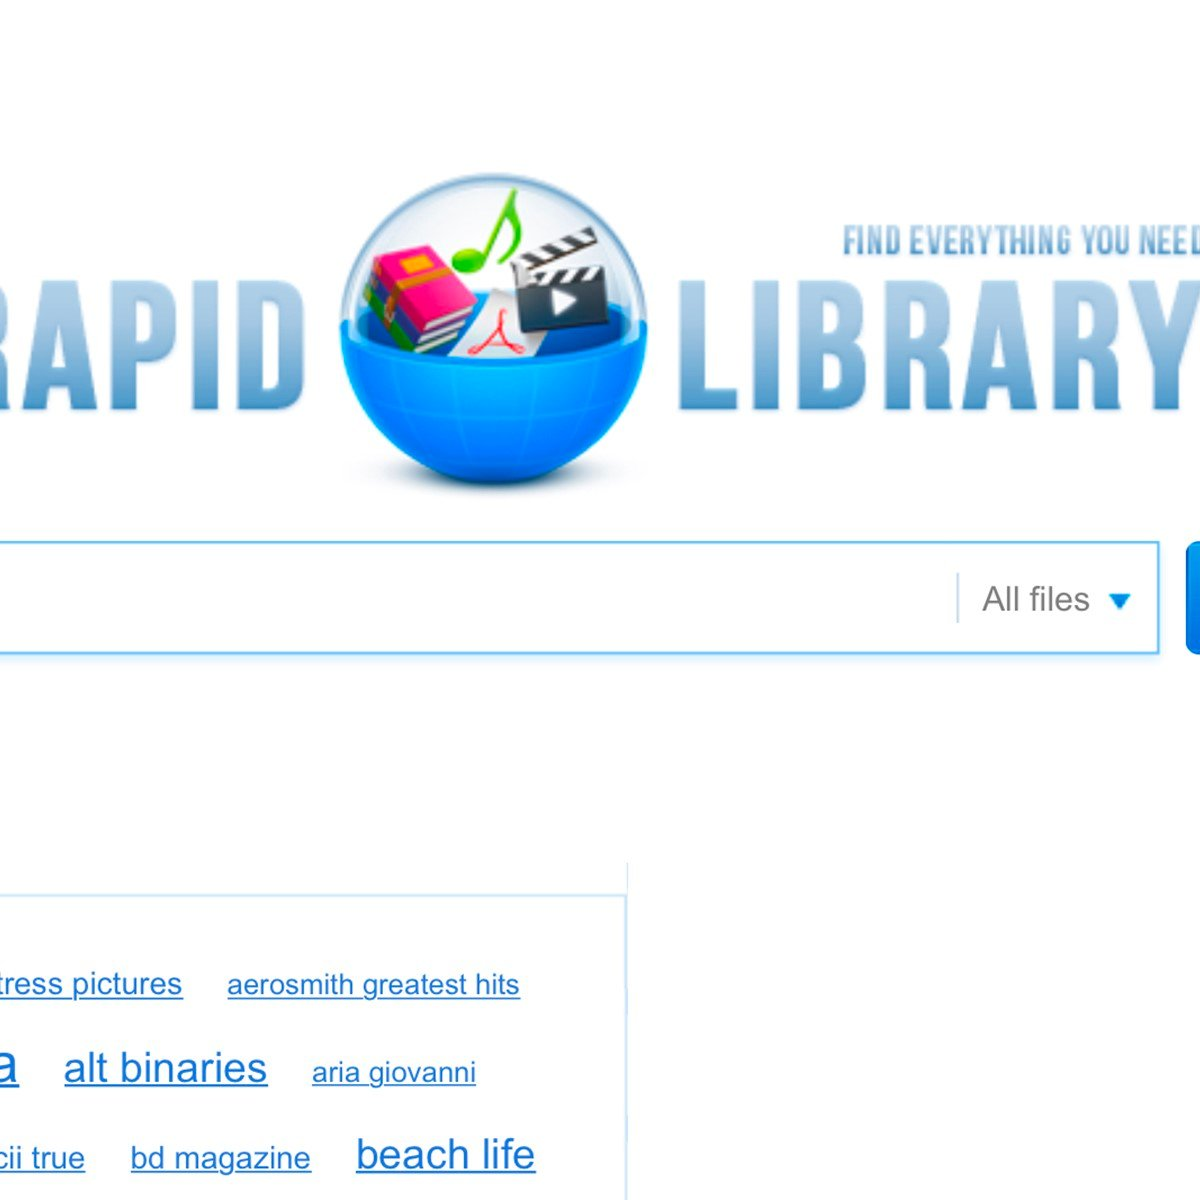 Rapidlibrary